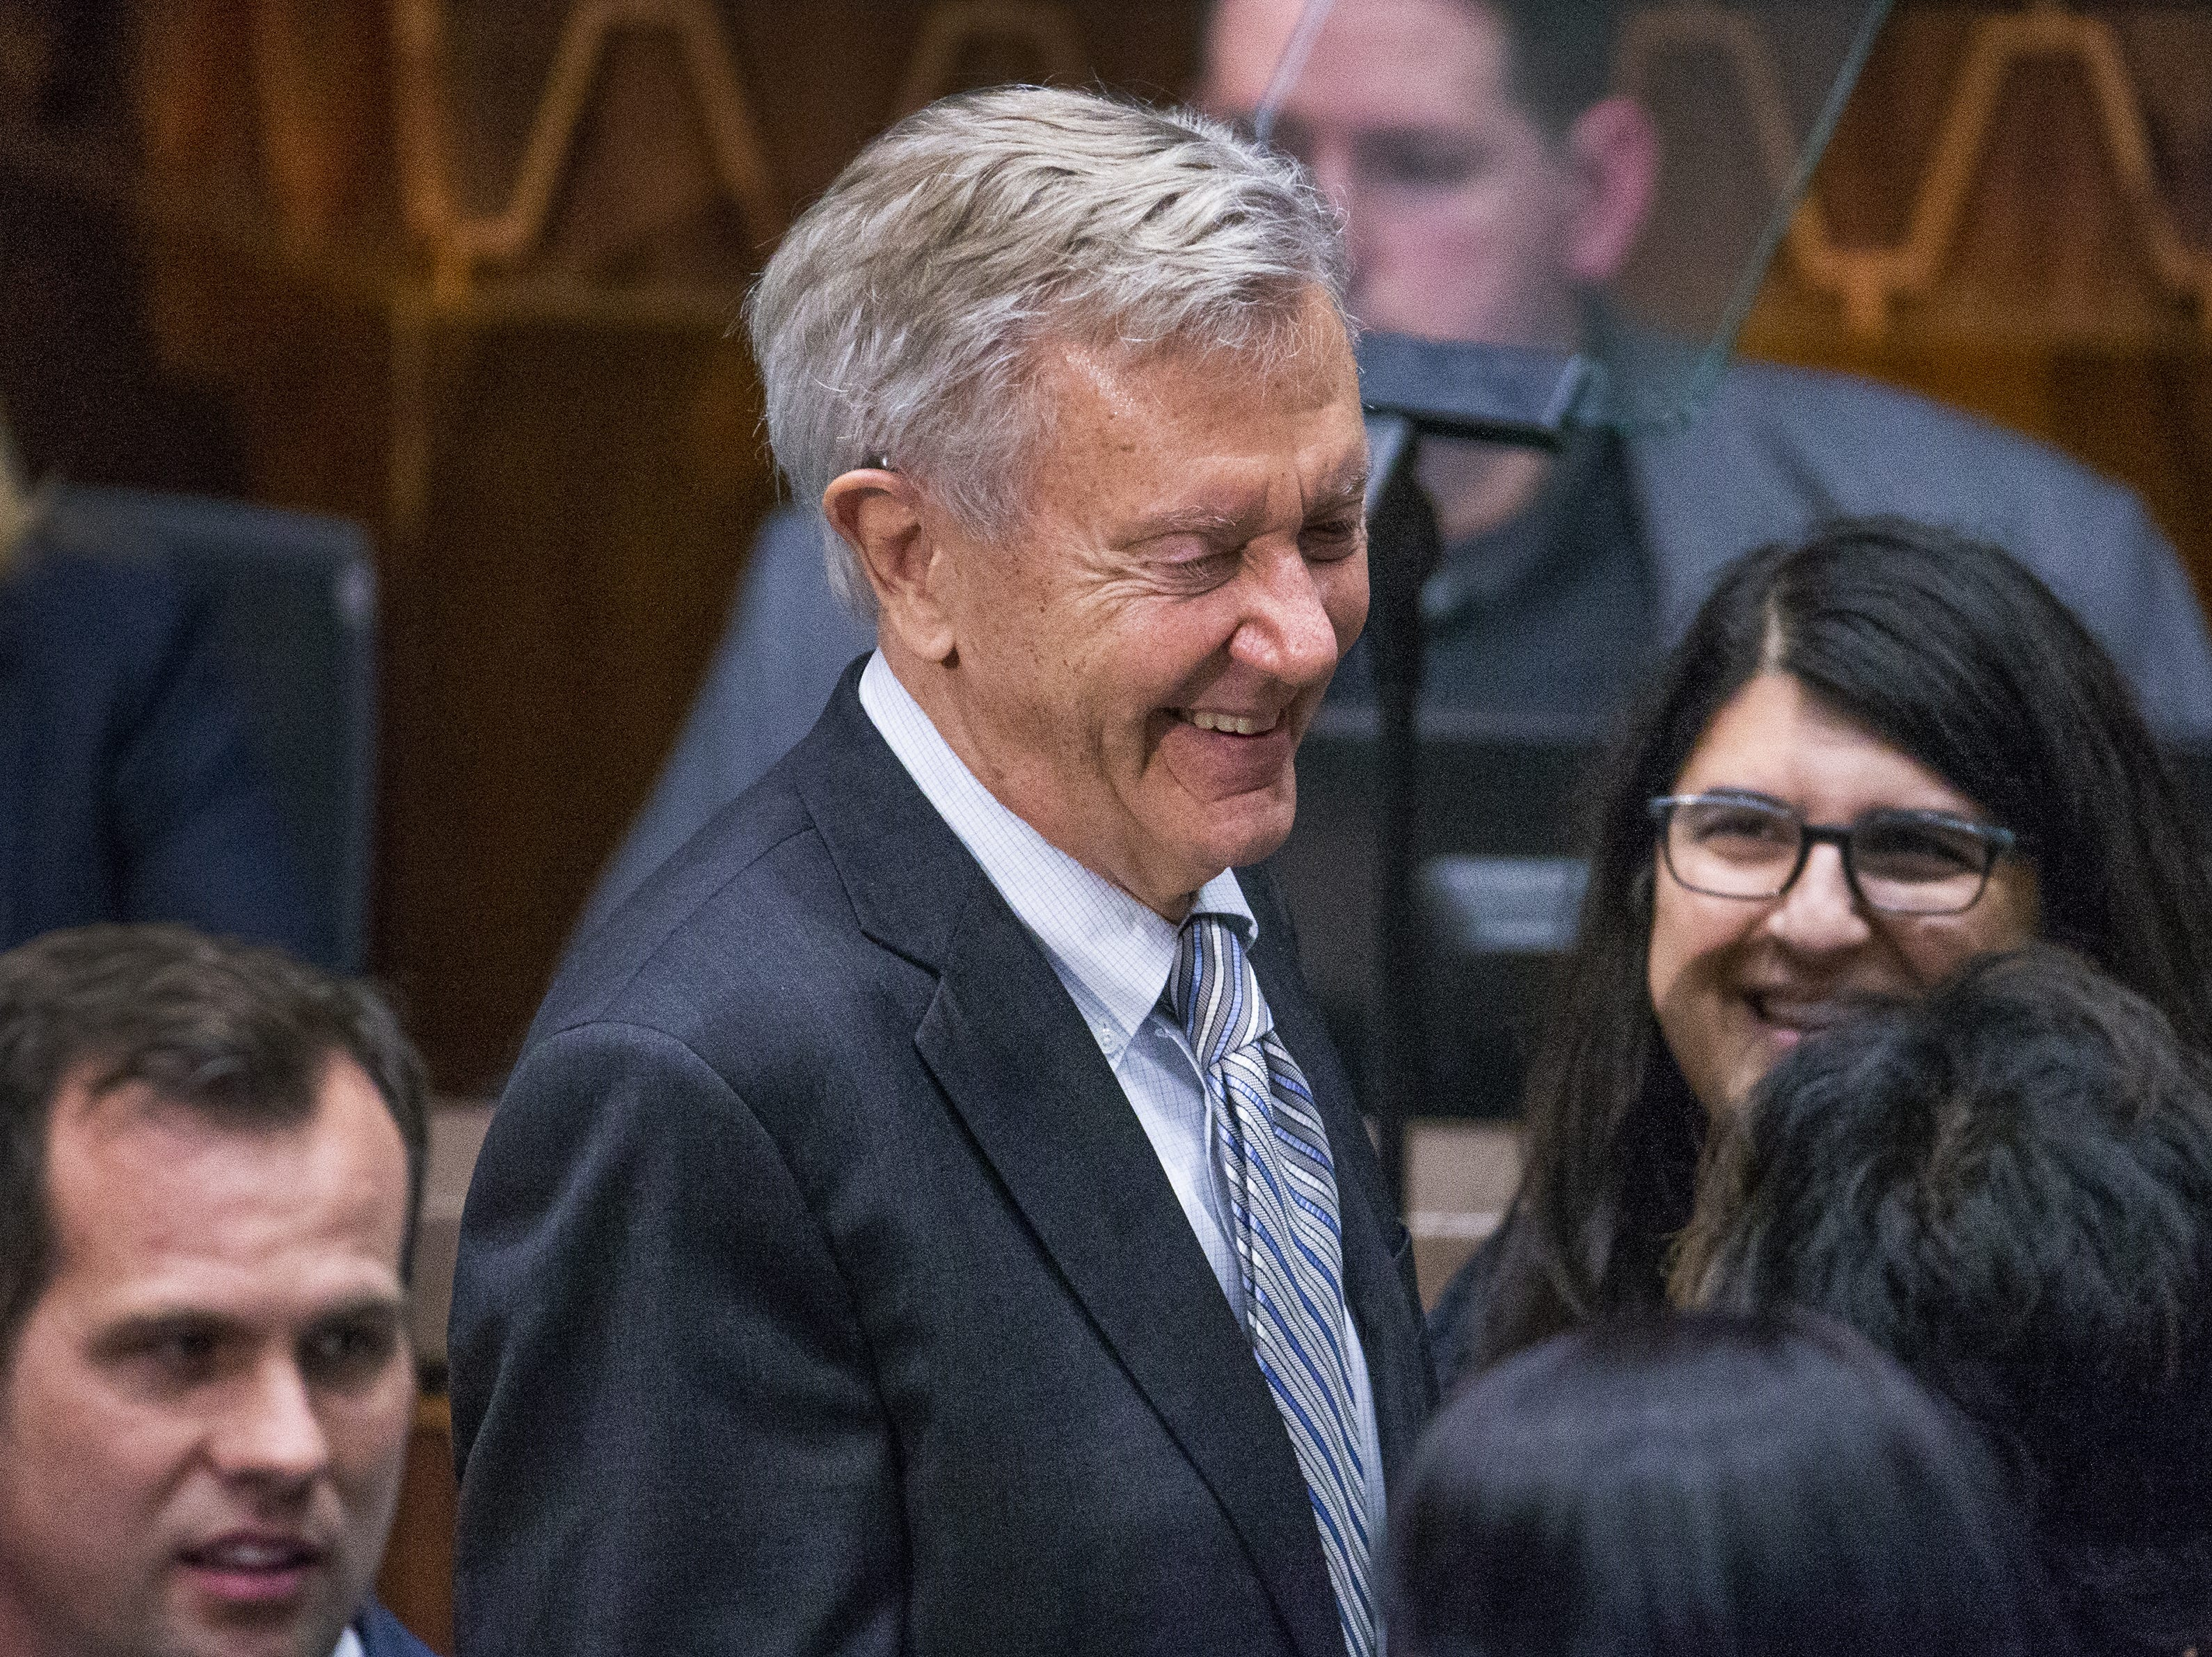 Former Gov. Bruce Babbitt mingles on the floor of the House of Representatives before Gov. Doug Ducey's State of the State address to the Legislature and guests gathered at the Arizona state Capitol on Jan. 14, 2019.